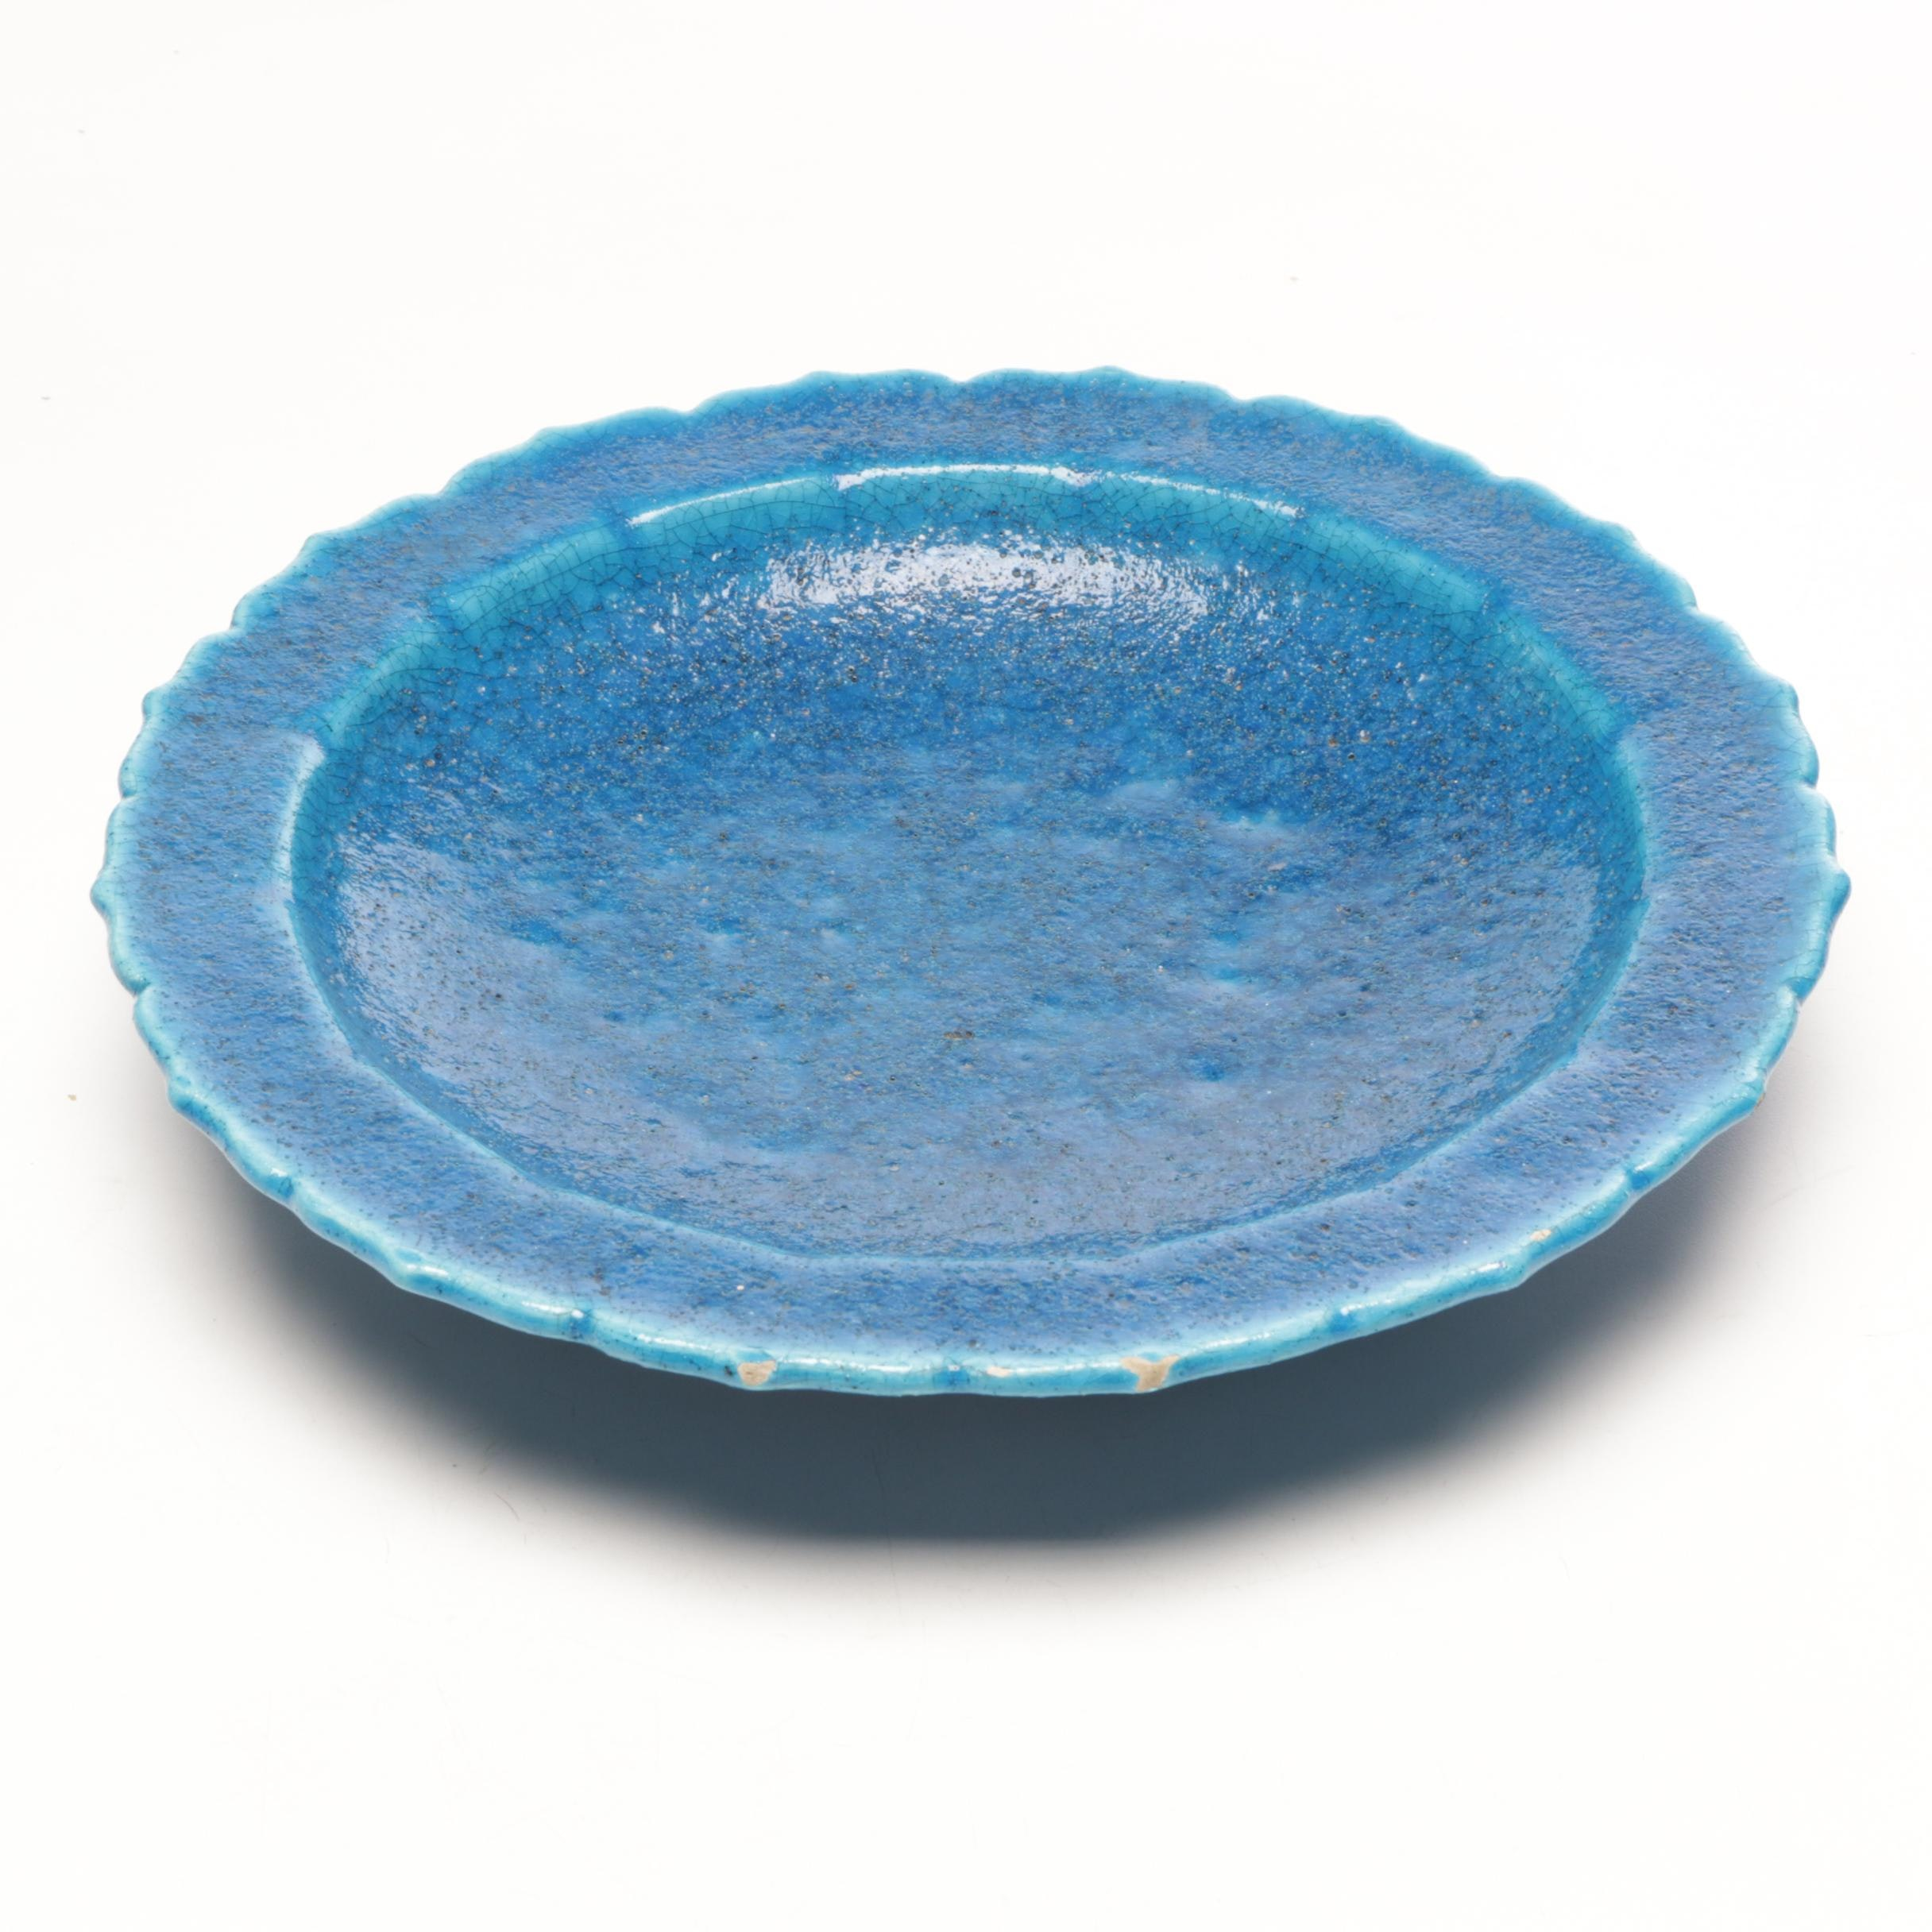 Edmond Lachenal Turquoise Acid Etched Glazed Charger